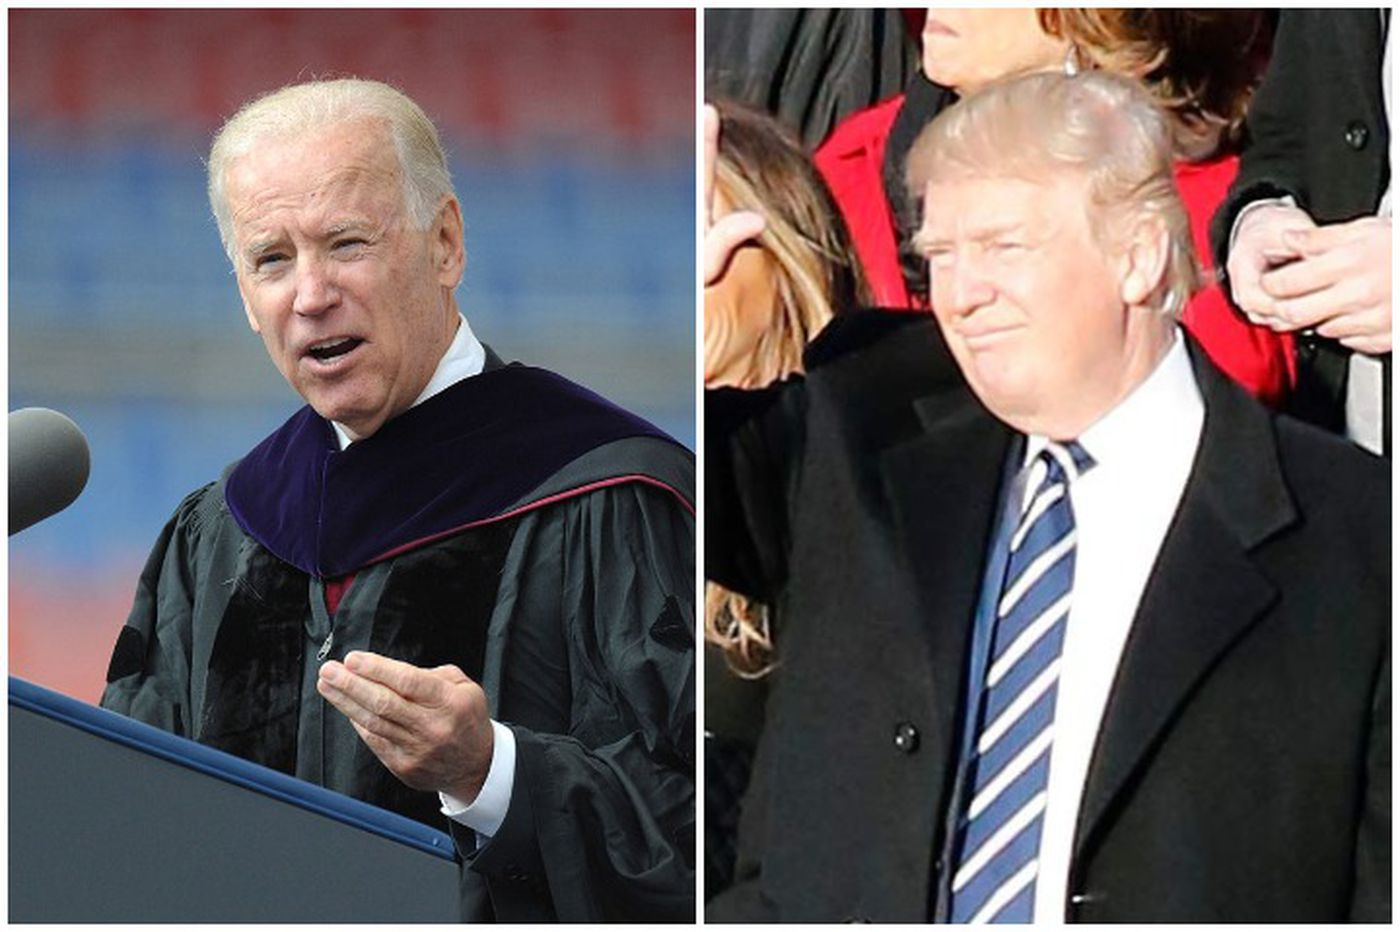 President Trump loves to brag about Wharton but Joe Biden is Penn's big man on campus | Clout